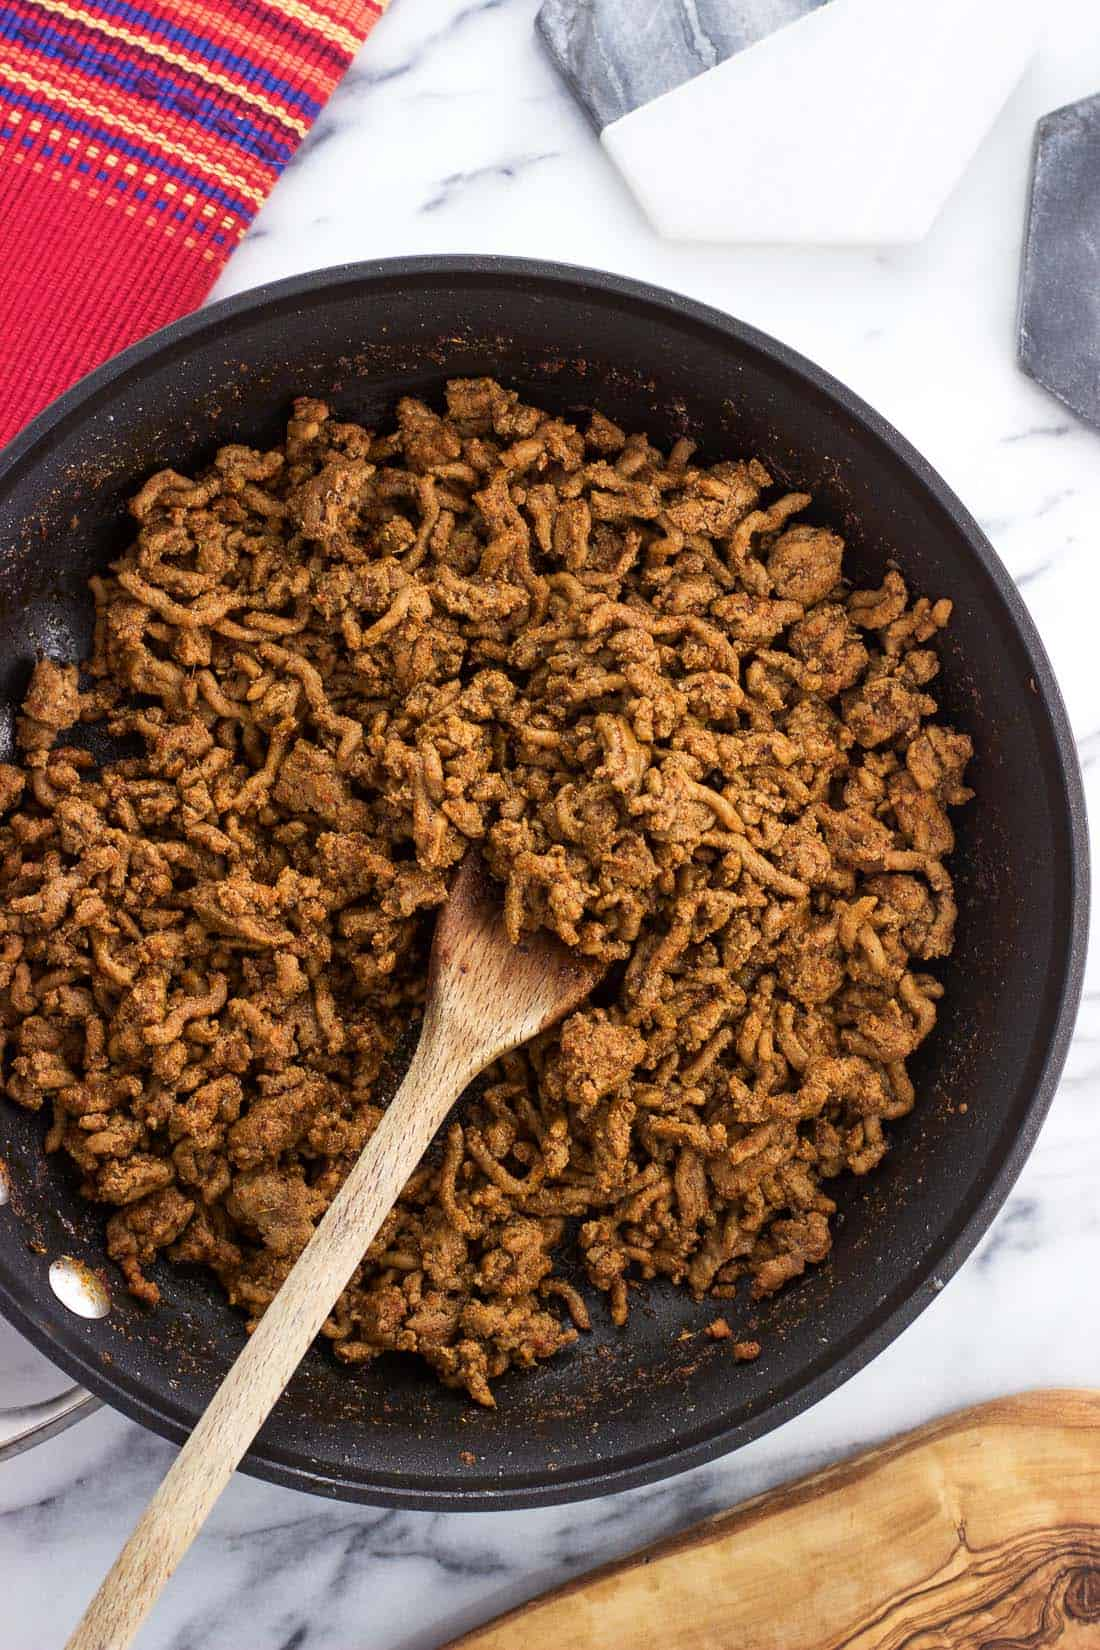 Taco meat is always a family dinner favorite. Whether you use ground beef or ground turkey, this recipe features the best homemade taco seasoning (no MSG!) and yields juicy and flavorful meat for tacos, salads, and more in no time.